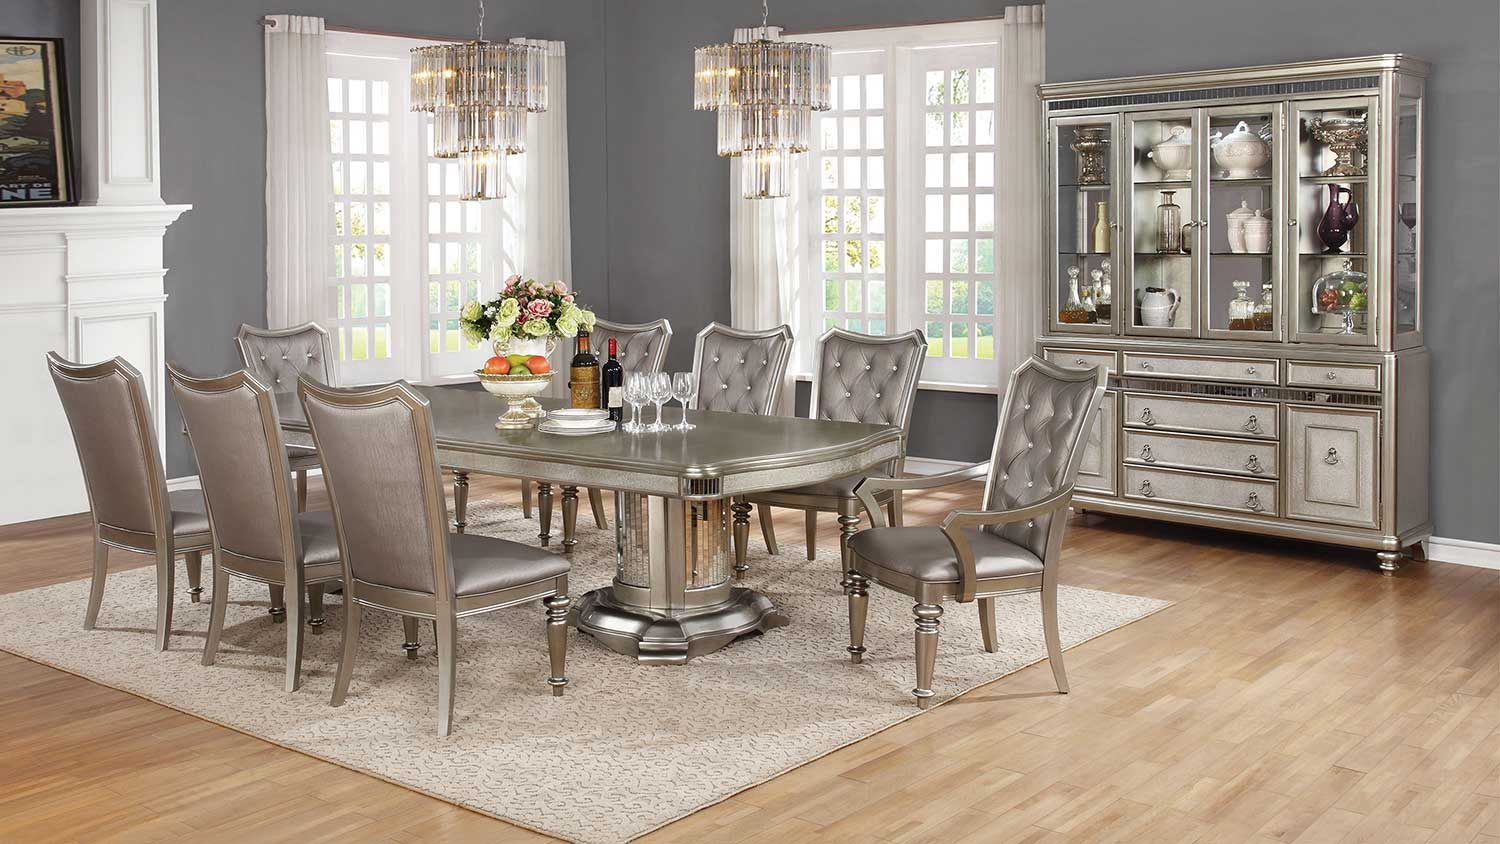 Coaster Danette Dining Set - Metallic Platinum